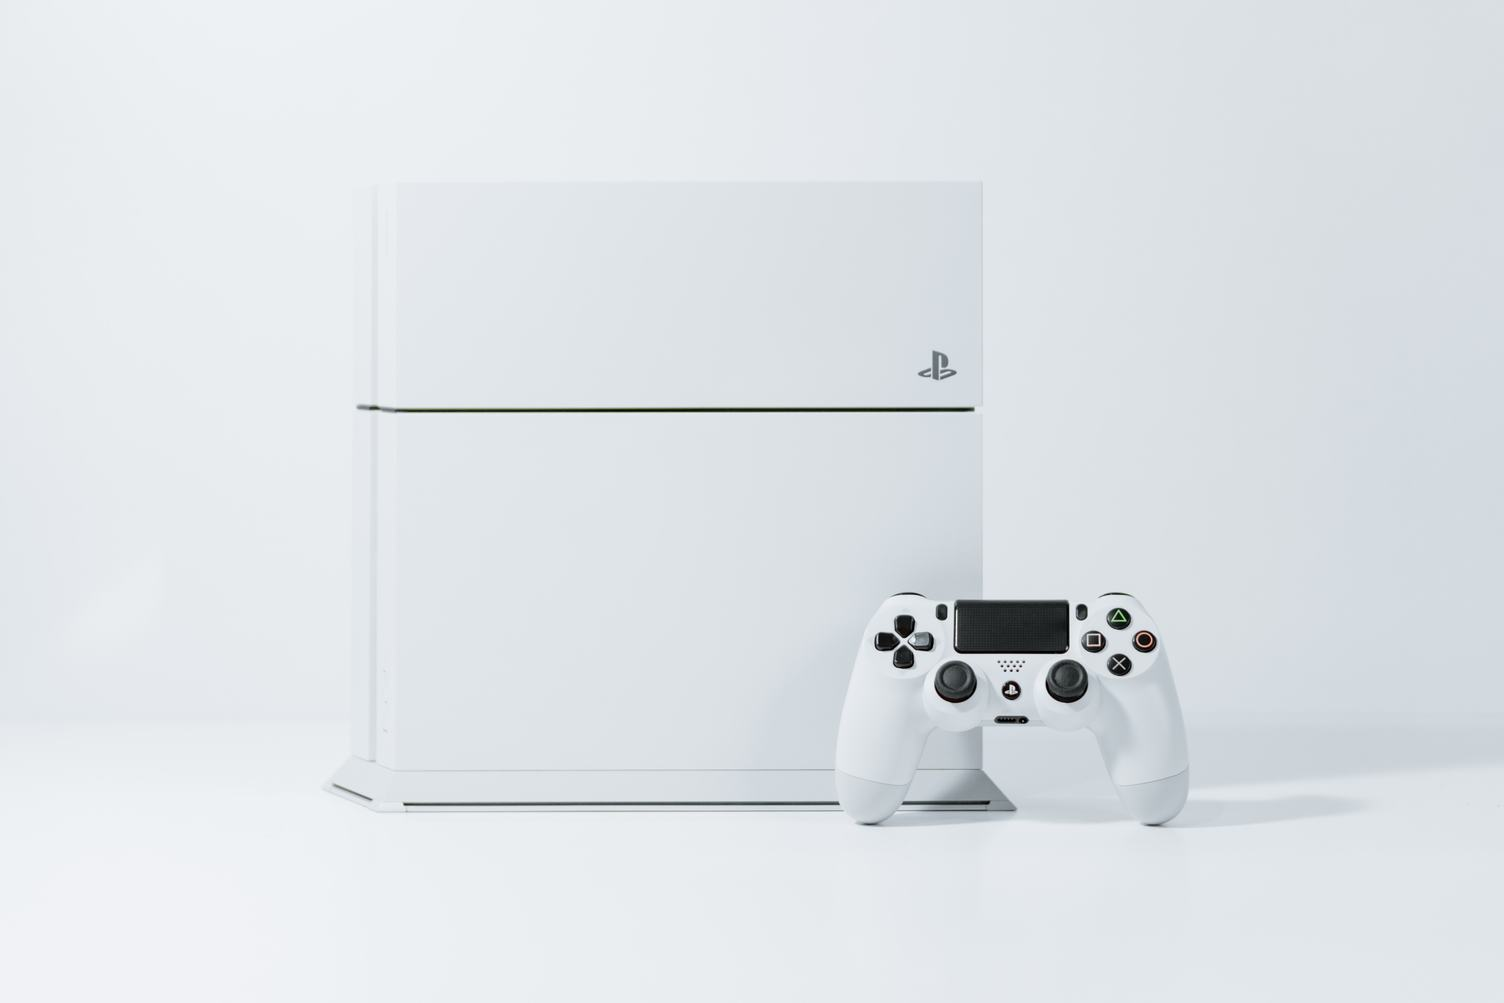 White PS4 Videogame Console and Game Controller